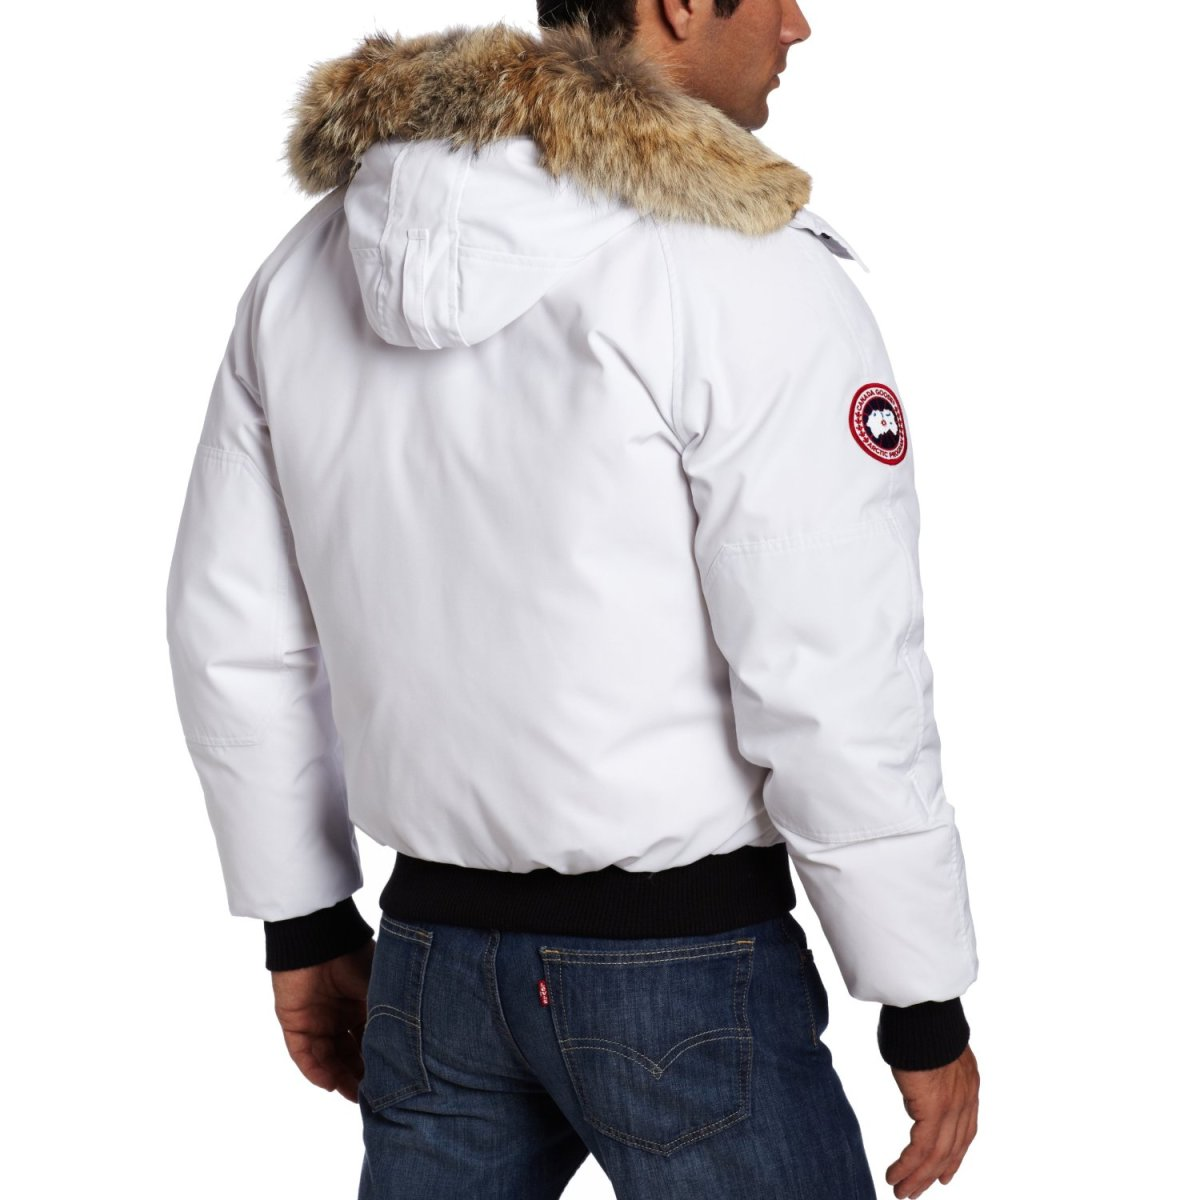 A Complete Review Of The Chilliwack Bomber Jacket By Canada Goose